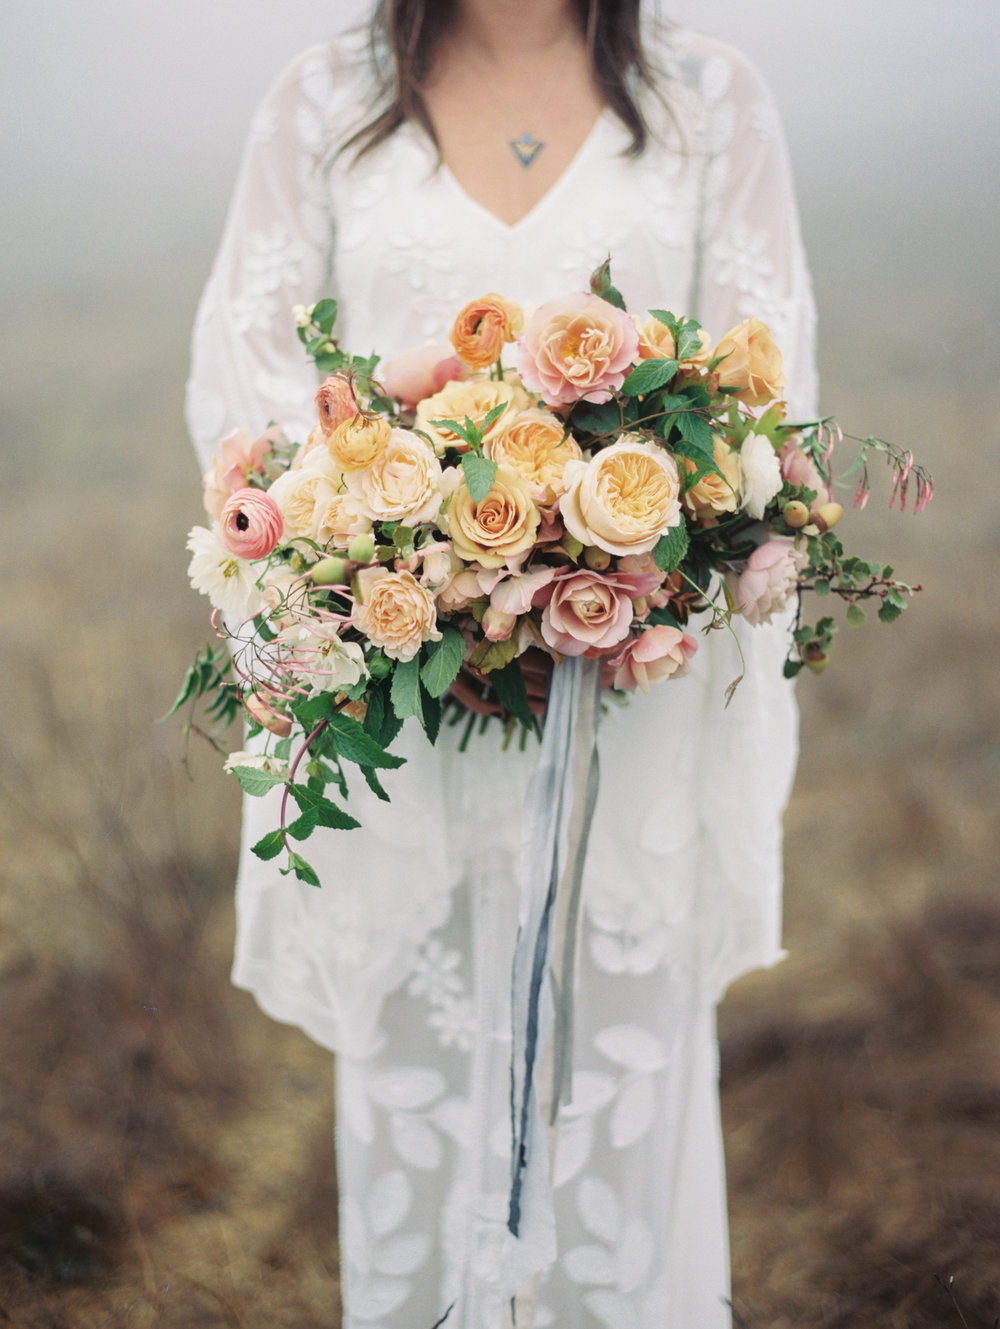 Image by Winsome + Wright  / Florals by Wilder Floral Co. ©